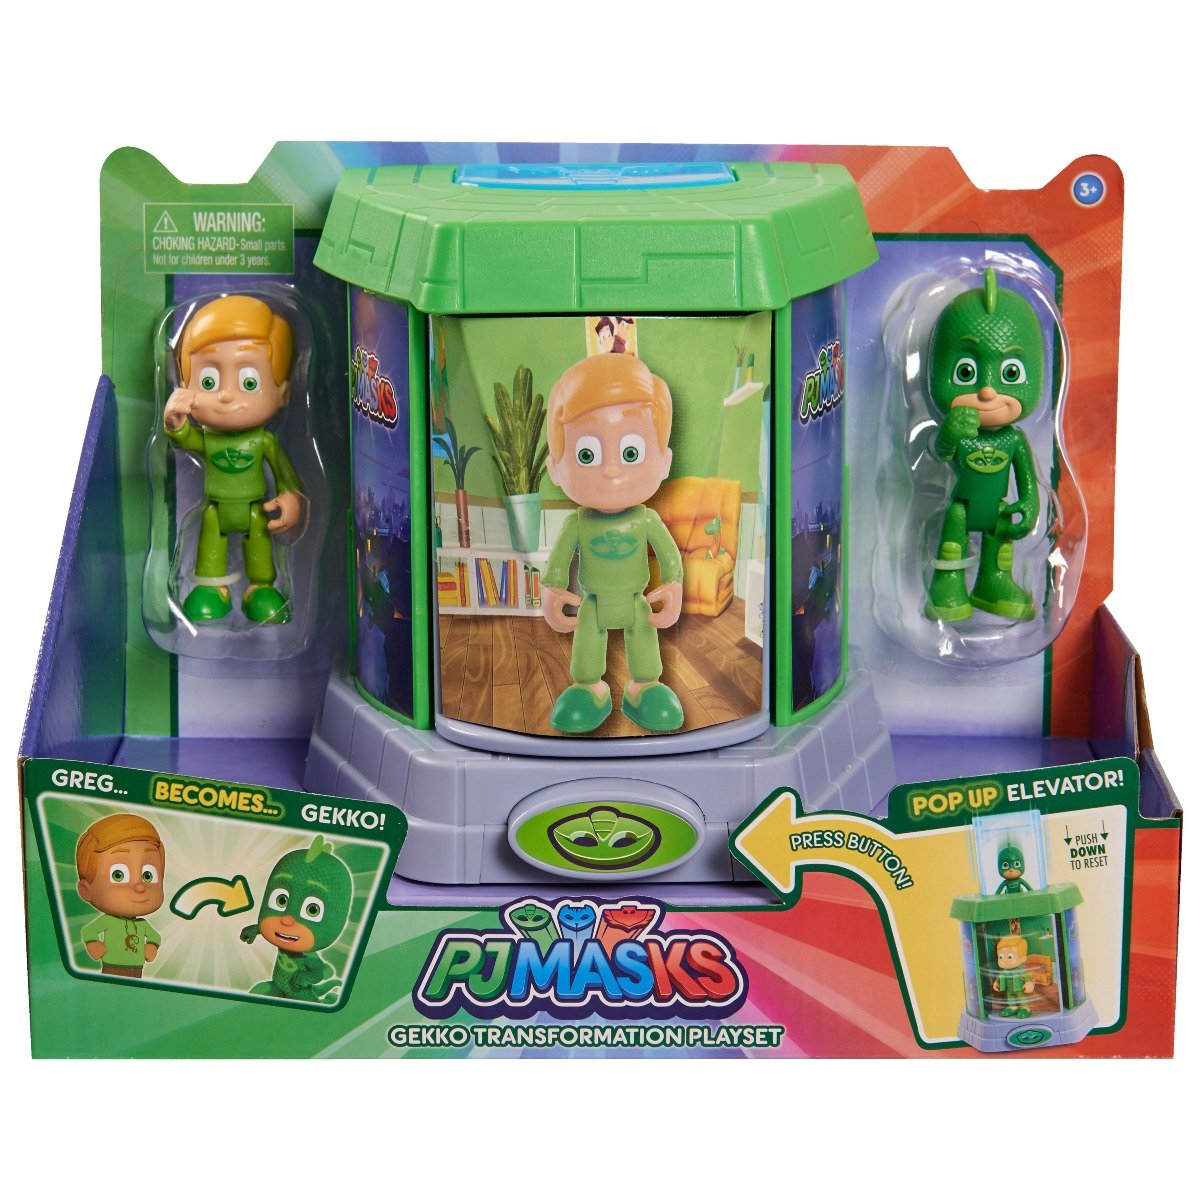 Set Figurine Pj Masks Transforming, Greg si Gekko 95468